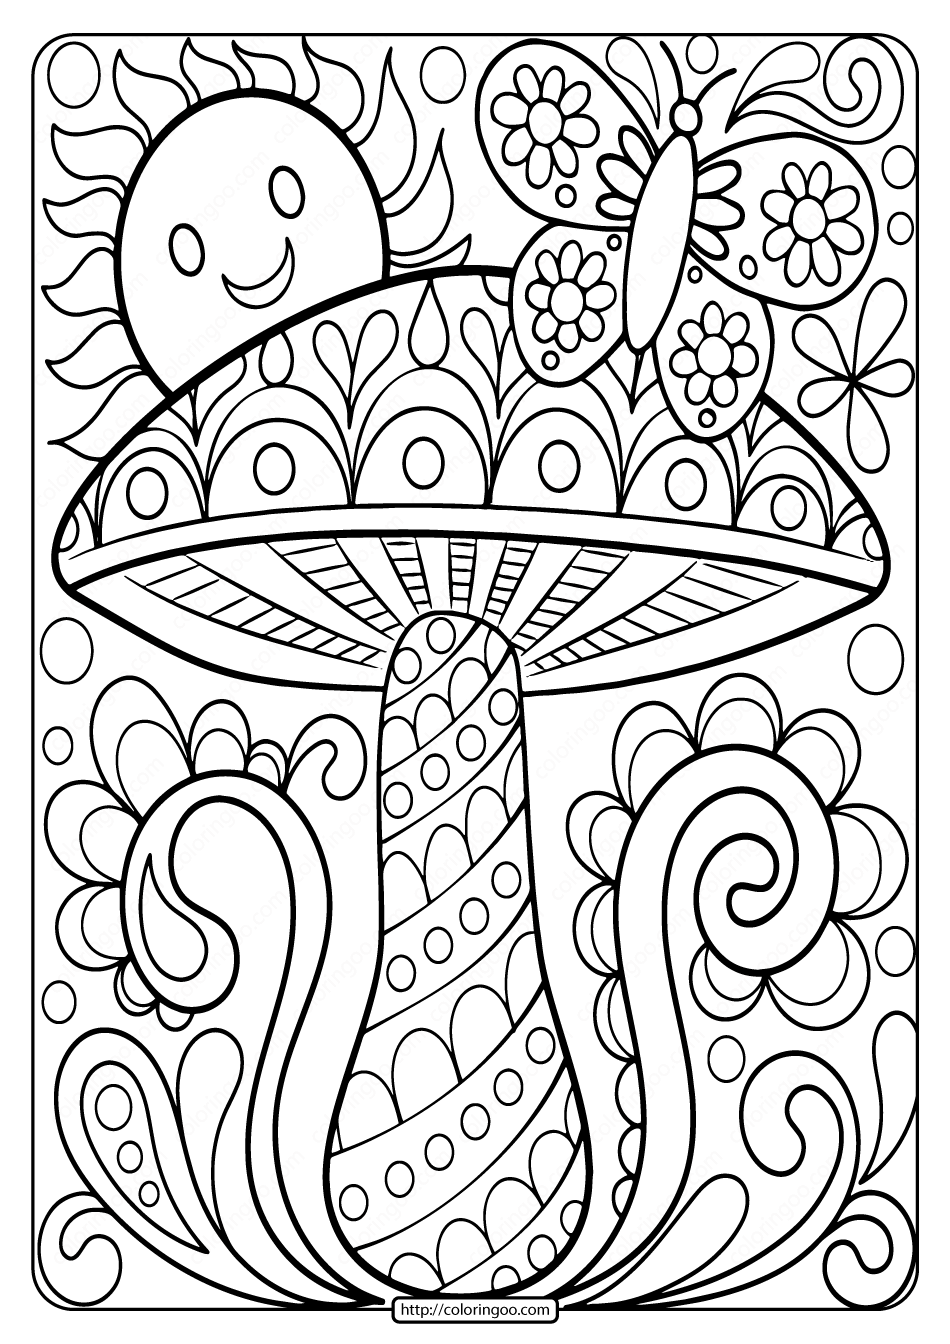 coloring pages to print for free free printable moana coloring pages activity sheets for for print free pages to coloring